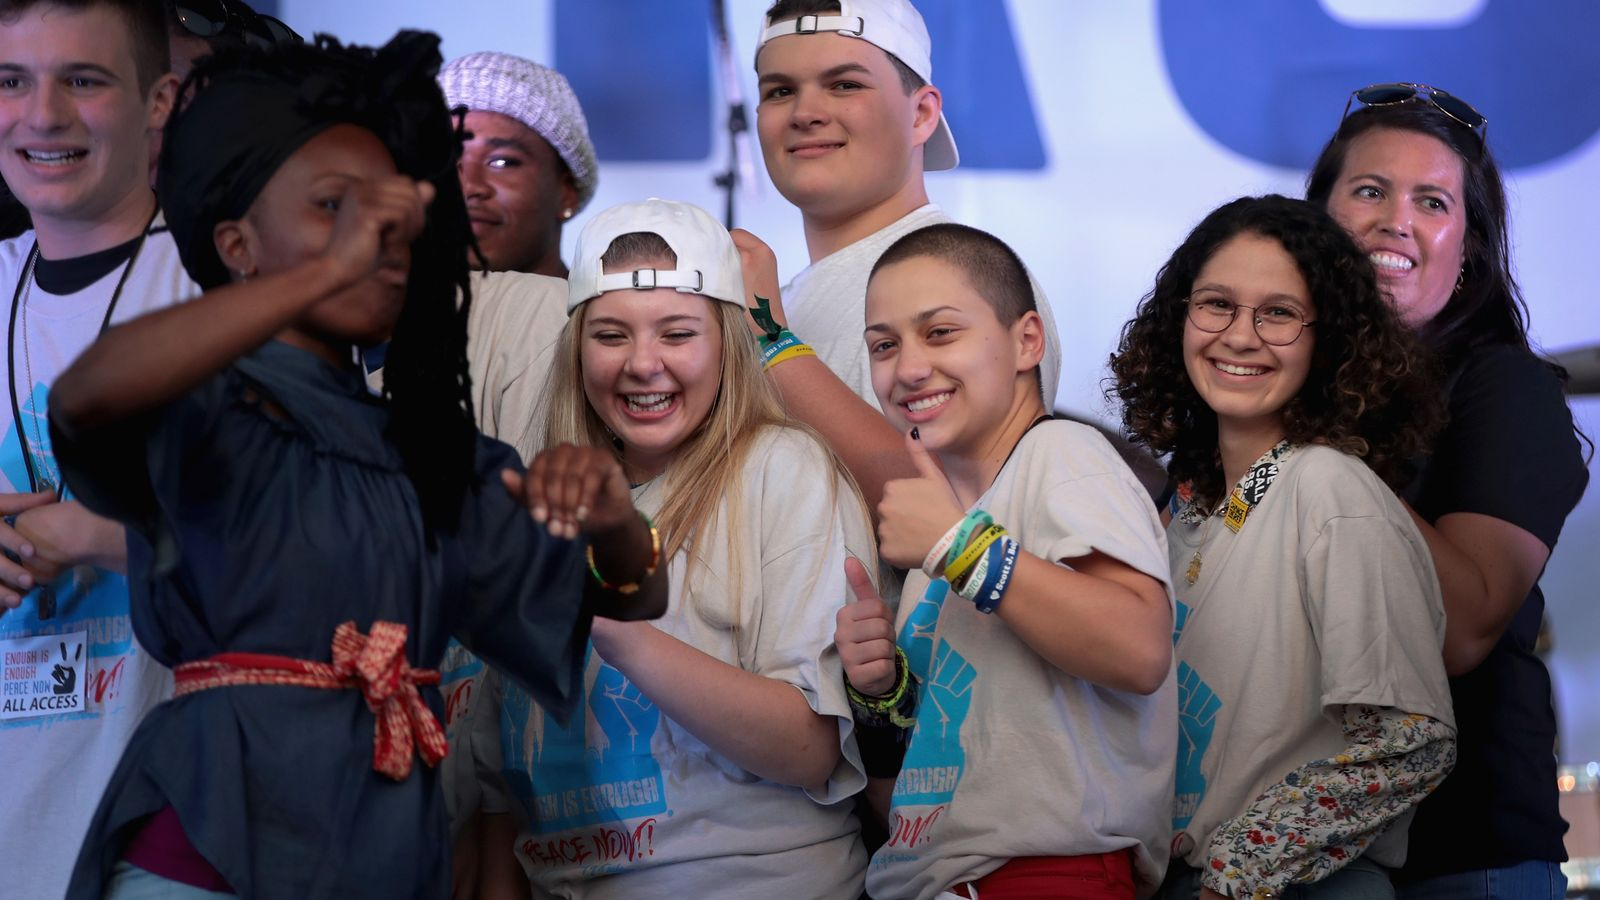 Chicago residents, Parkland Students join forces in Summer of Peace march against gun violence -